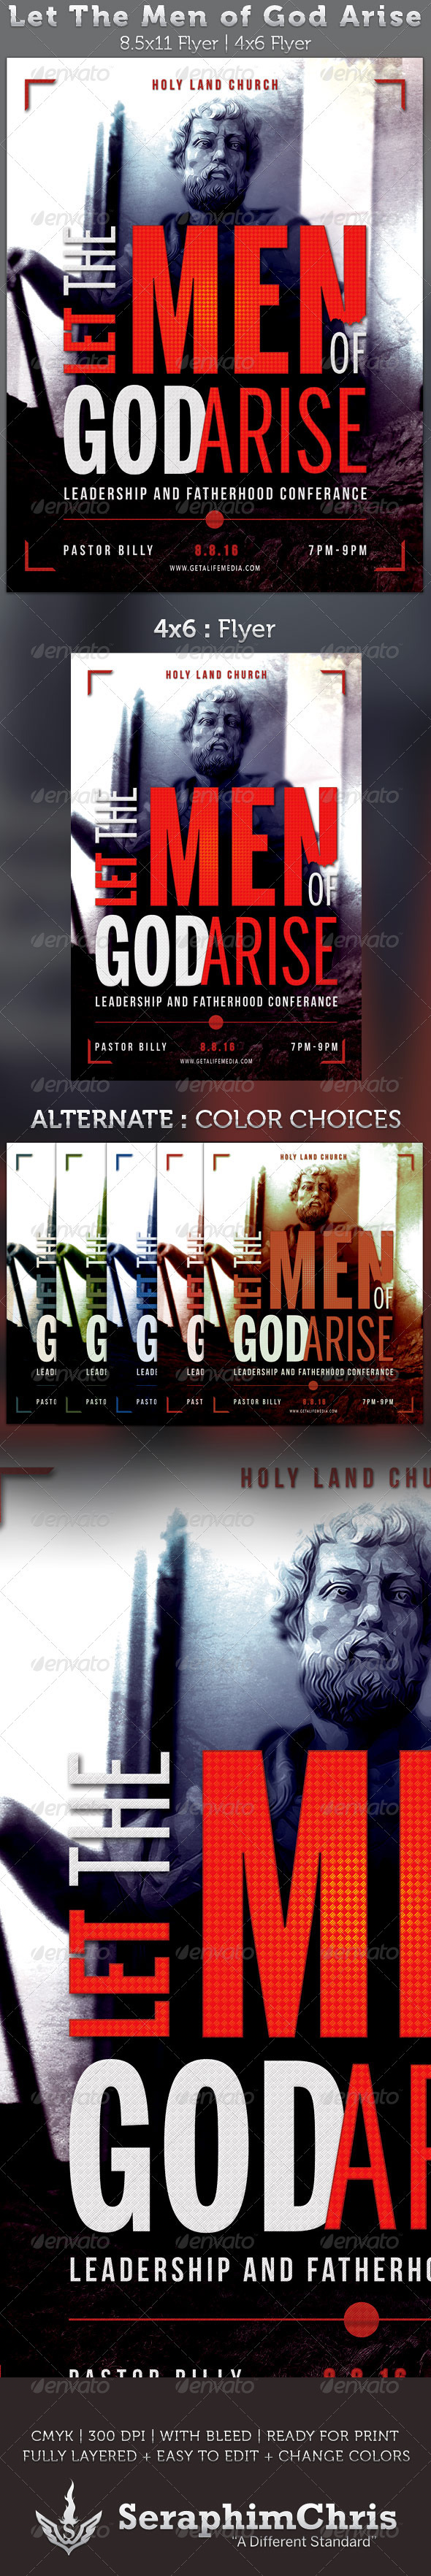 Let The Men of God Arise Church Flyer Template - Church Flyers